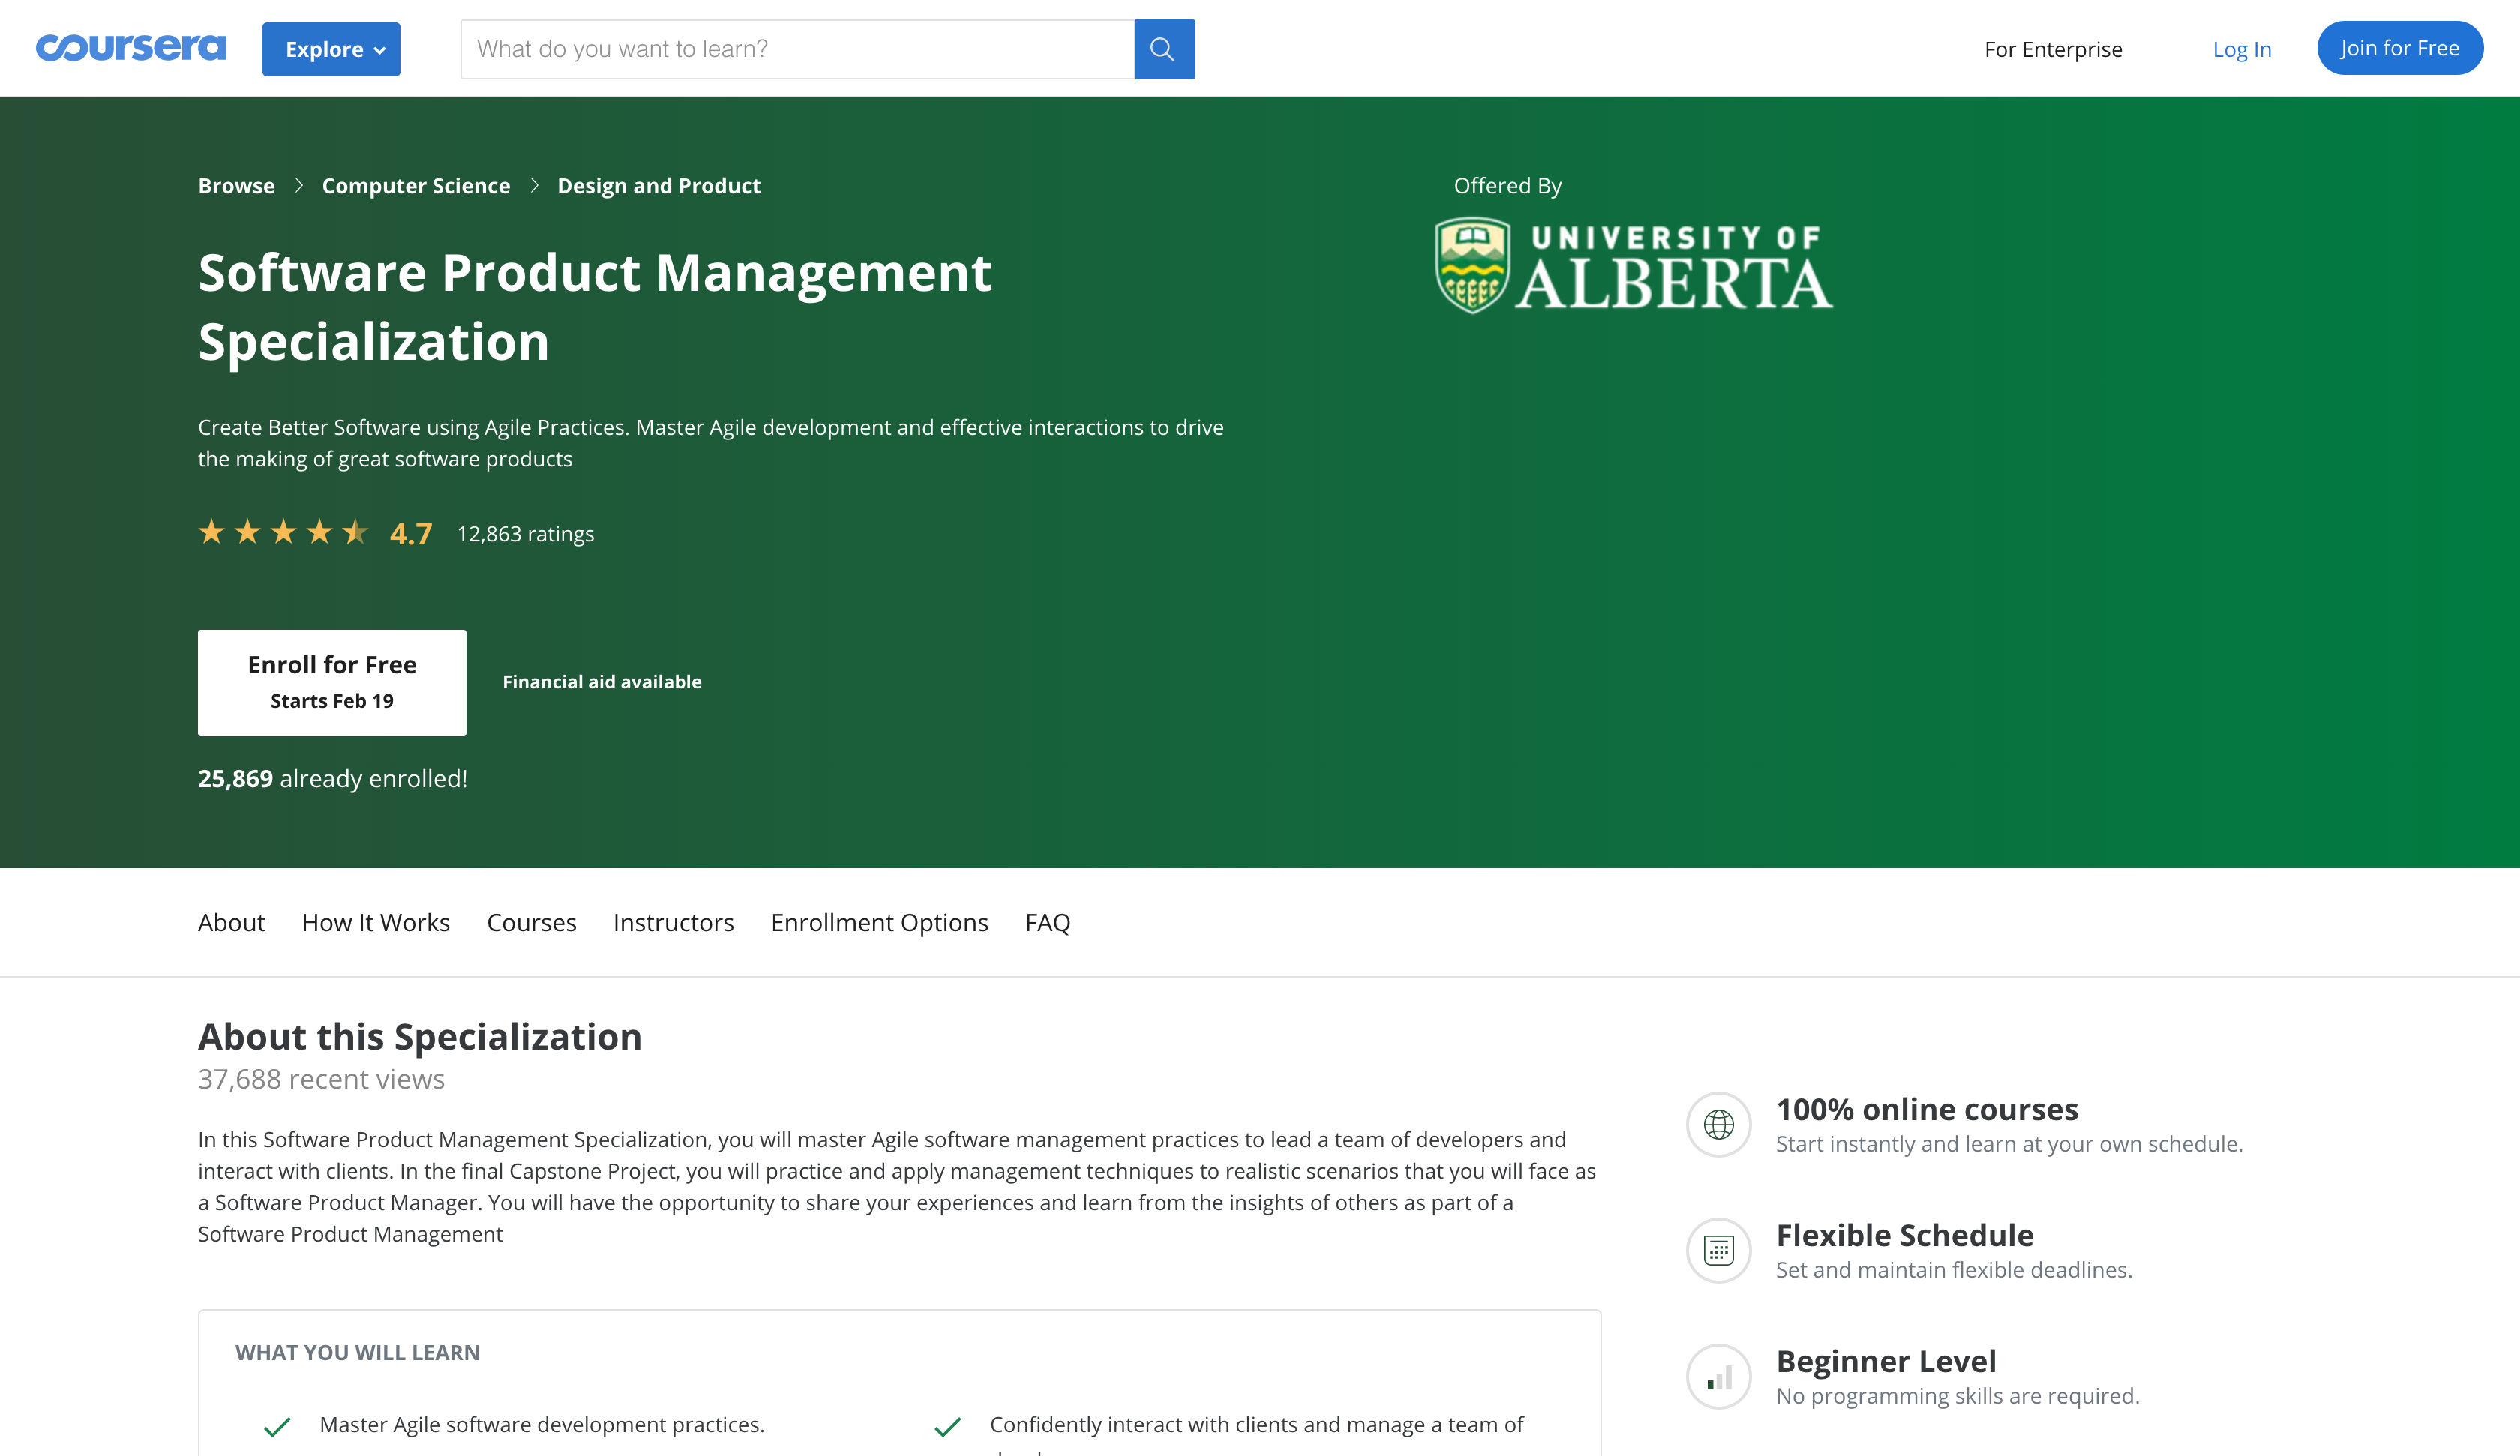 Software Product Management by University of Alberta (Coursera)